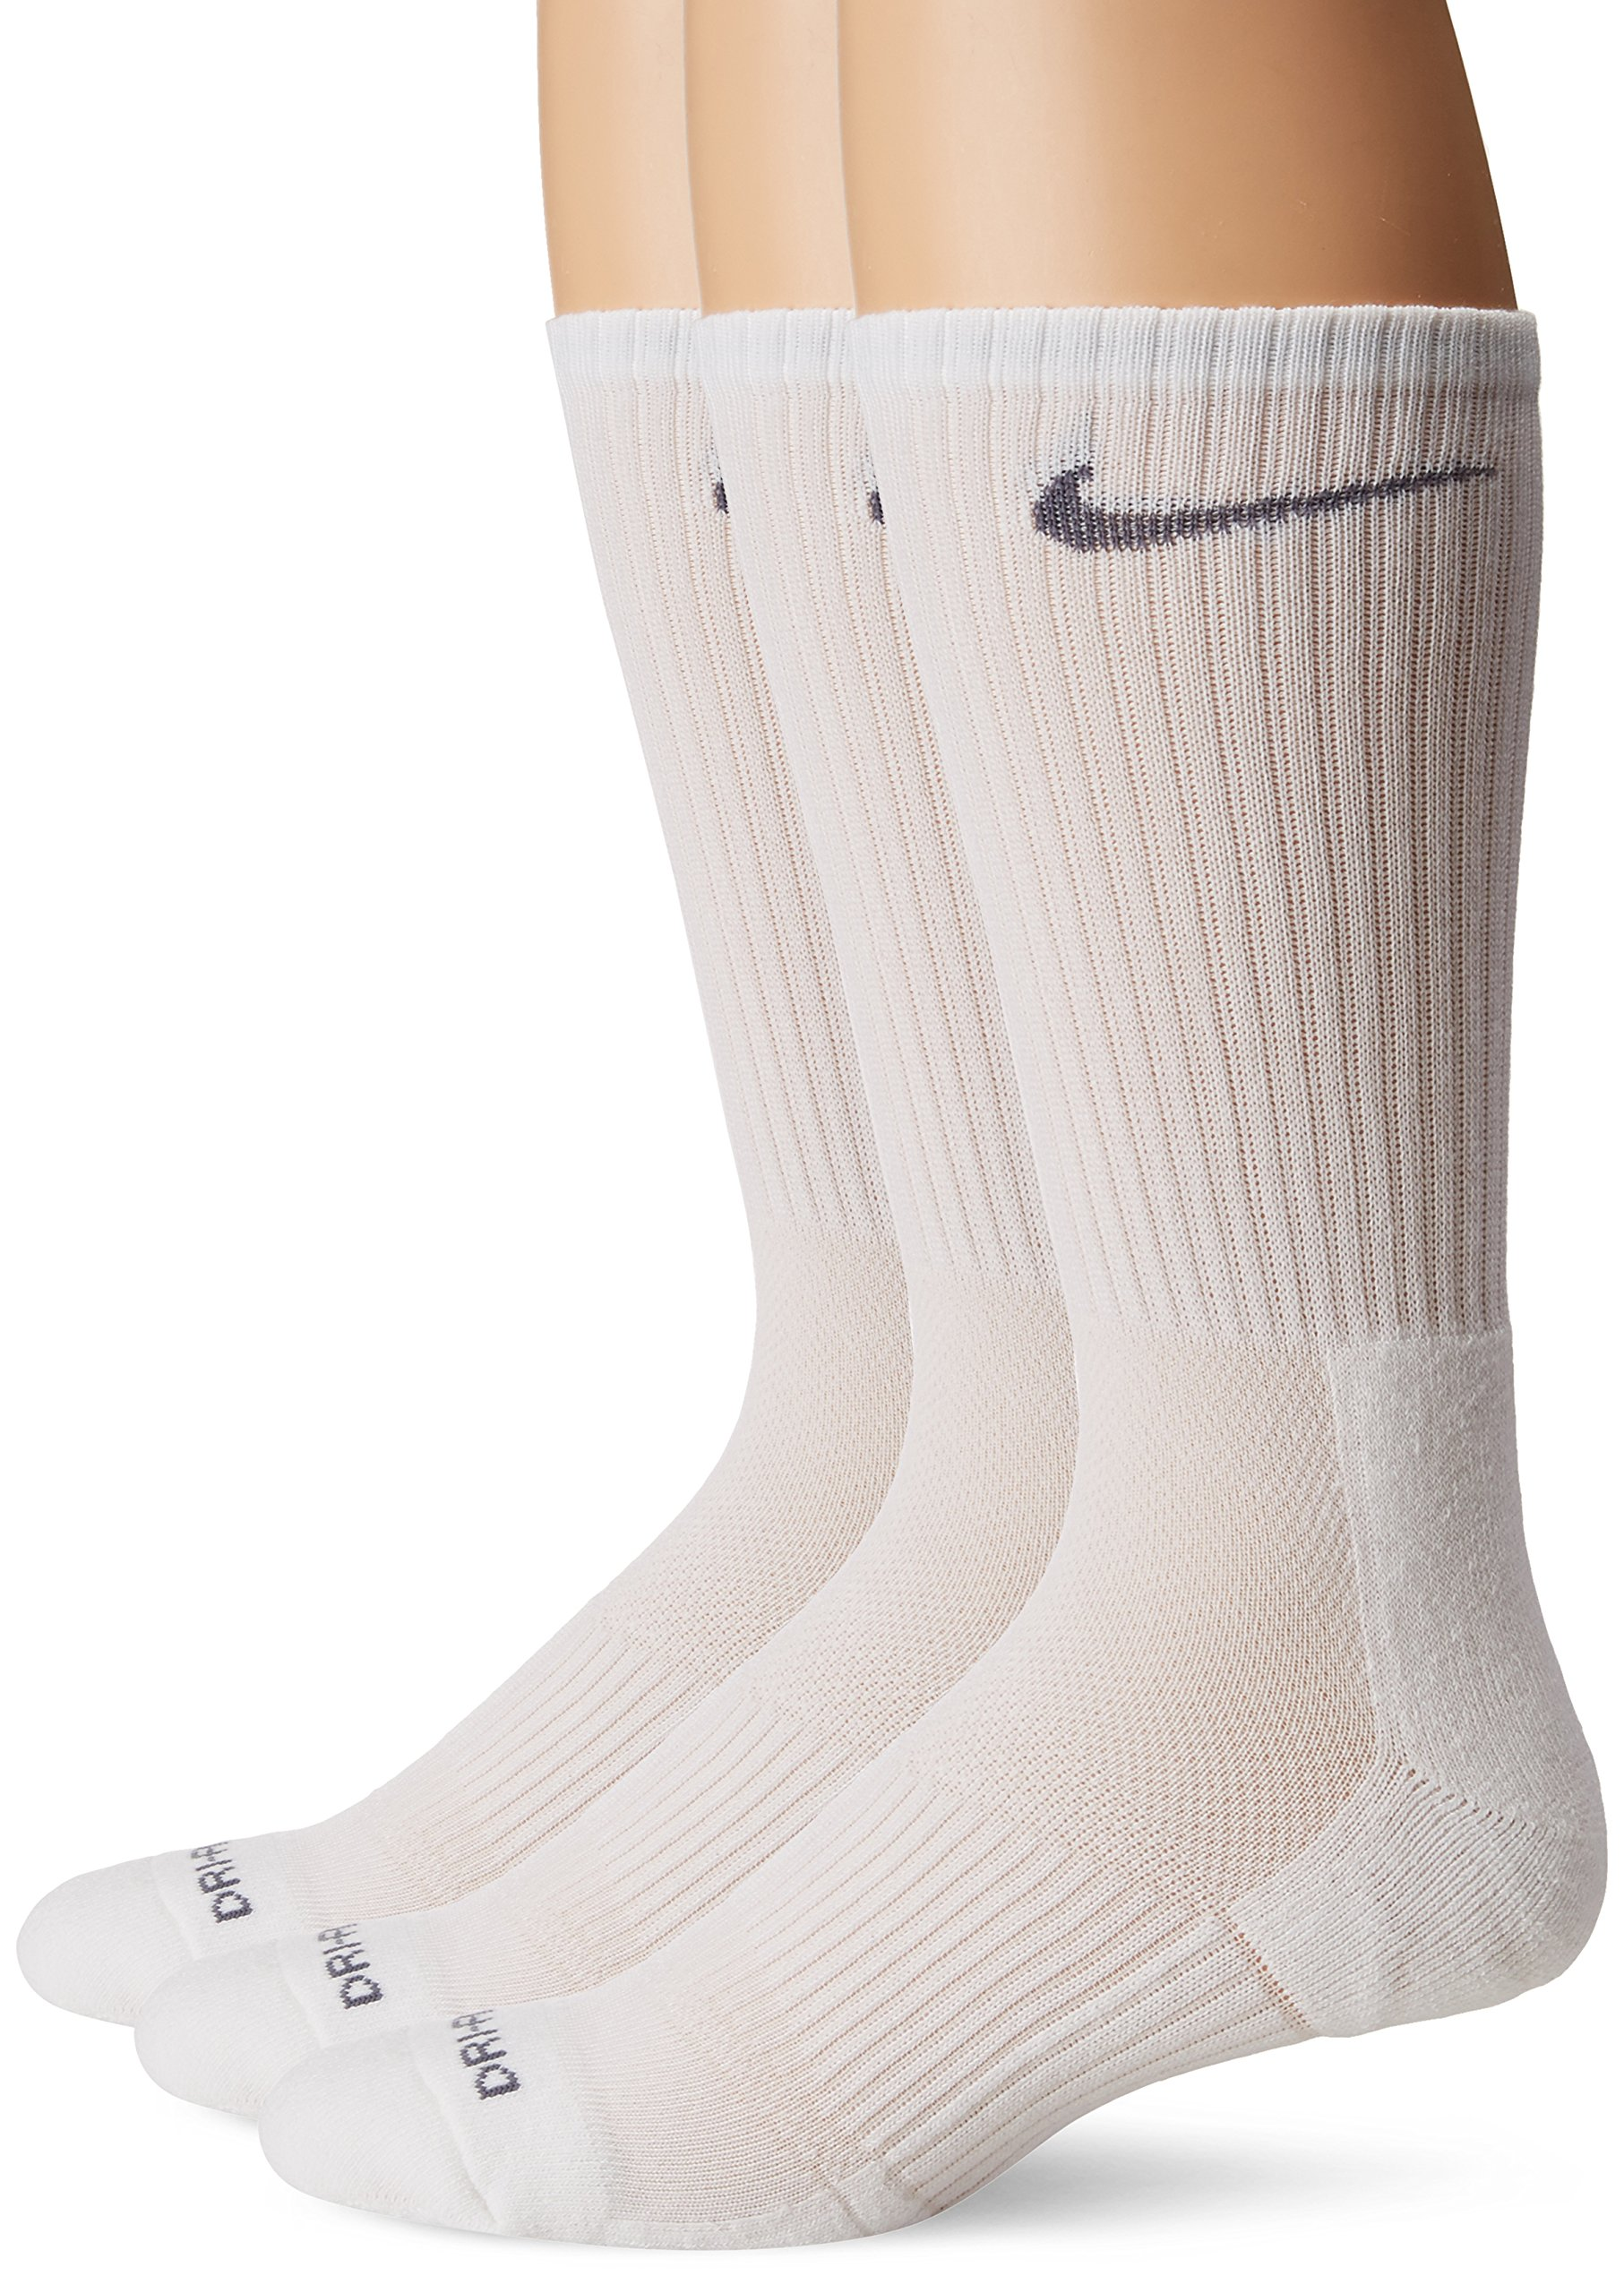 Nike Men's 3-pk Dri-fit Cushioned Crew Socks Made In USA , White , Large 8-12 by Nike